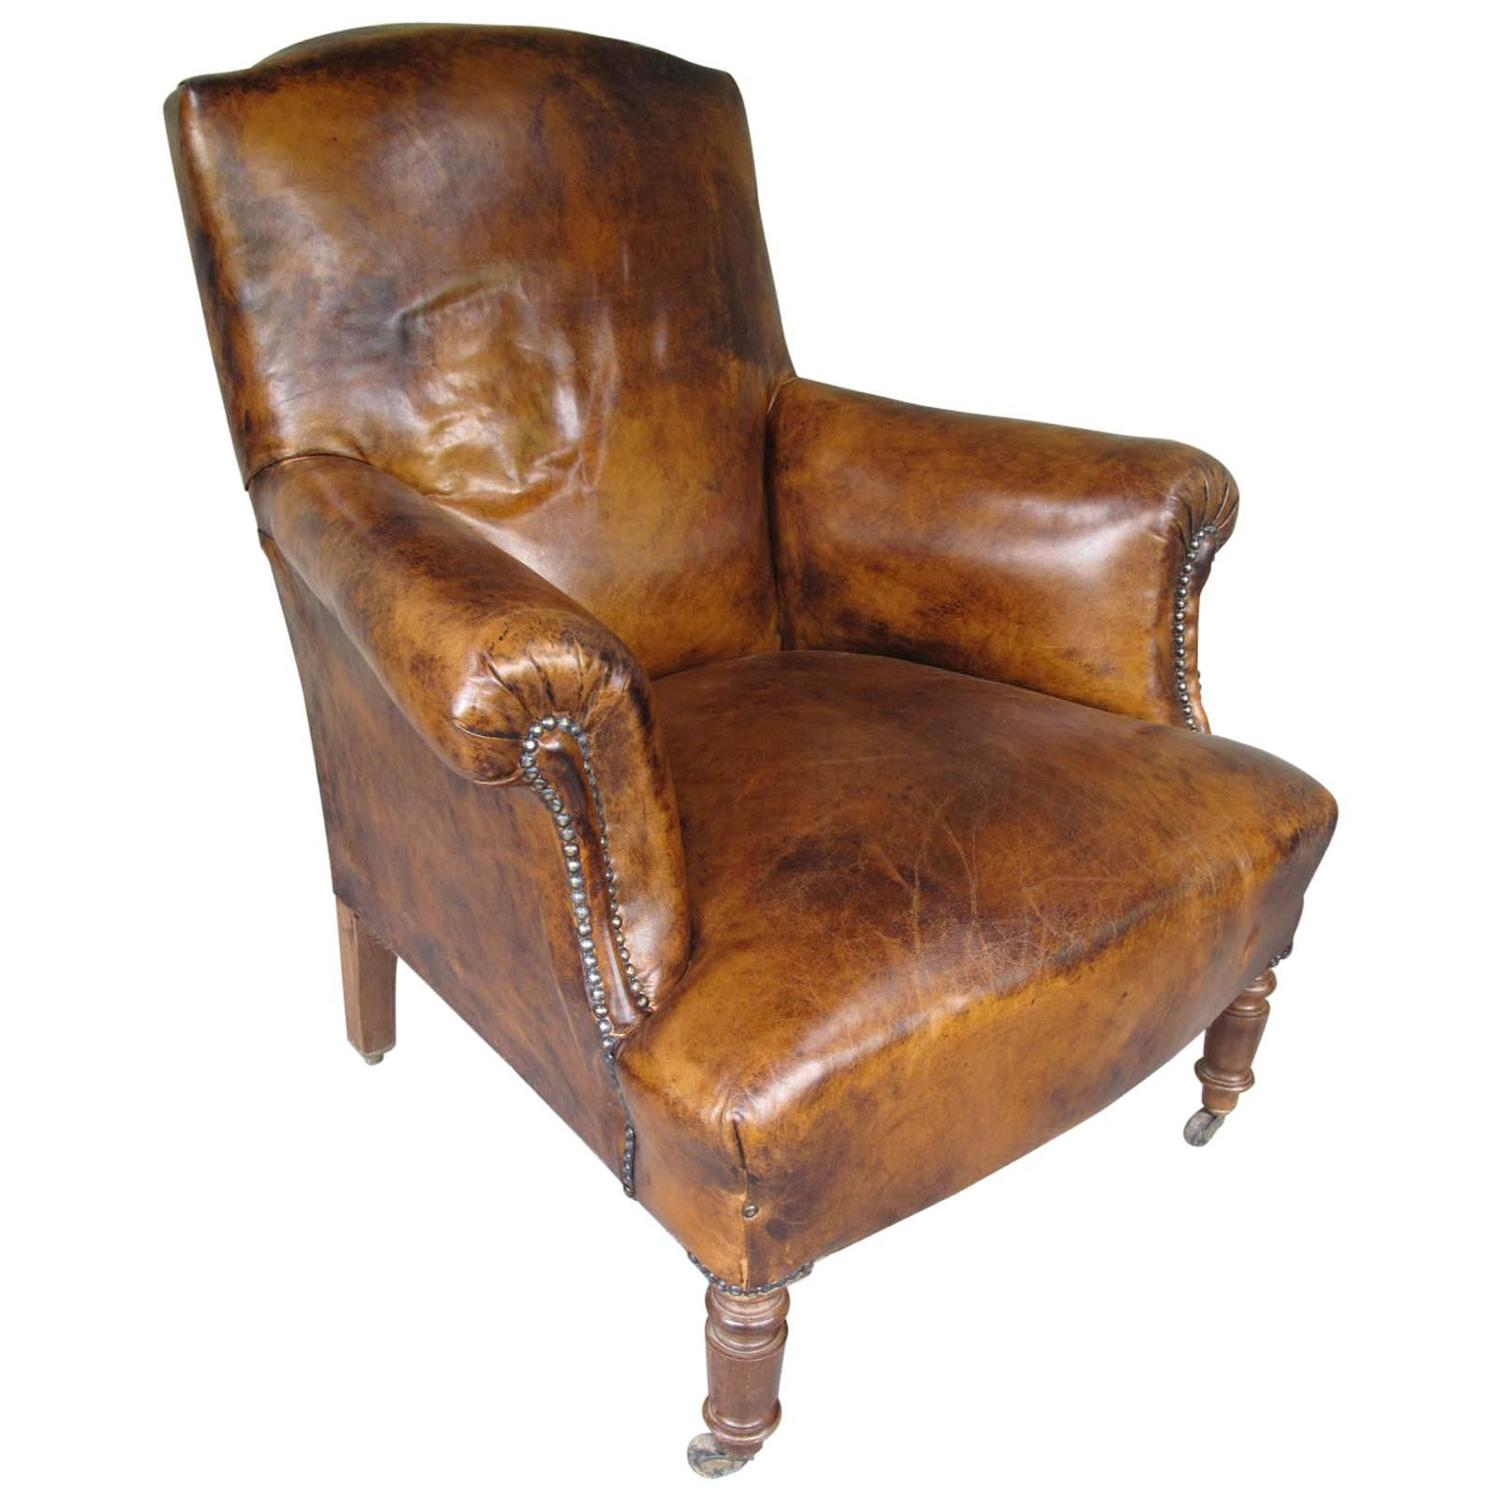 Leather Arm Chairs Antique French Armchair In Leather At 1stdibs